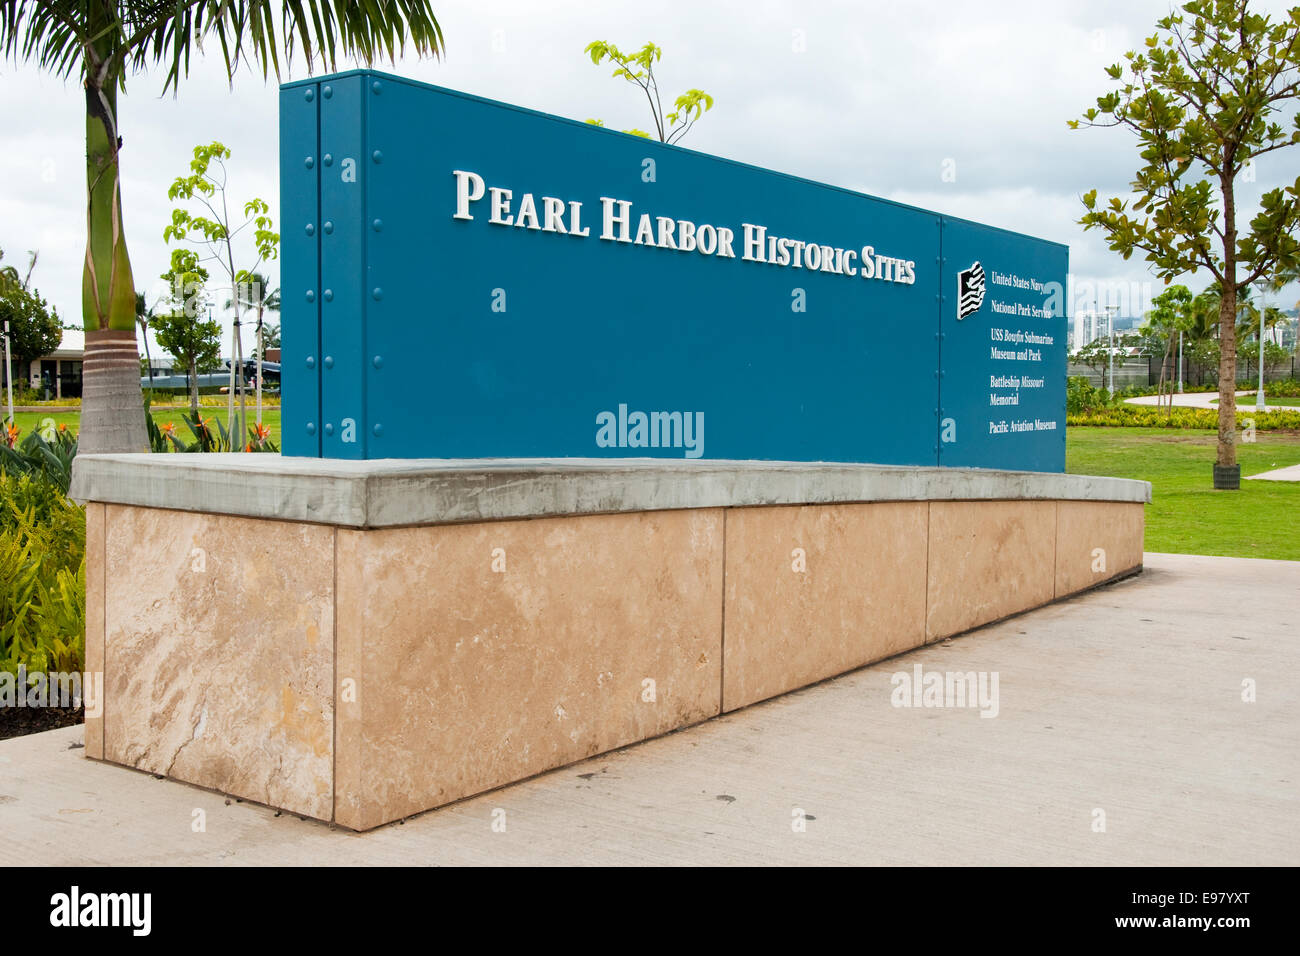 Pearl Harbor Historic Sites sign in Oahu Stock Photo